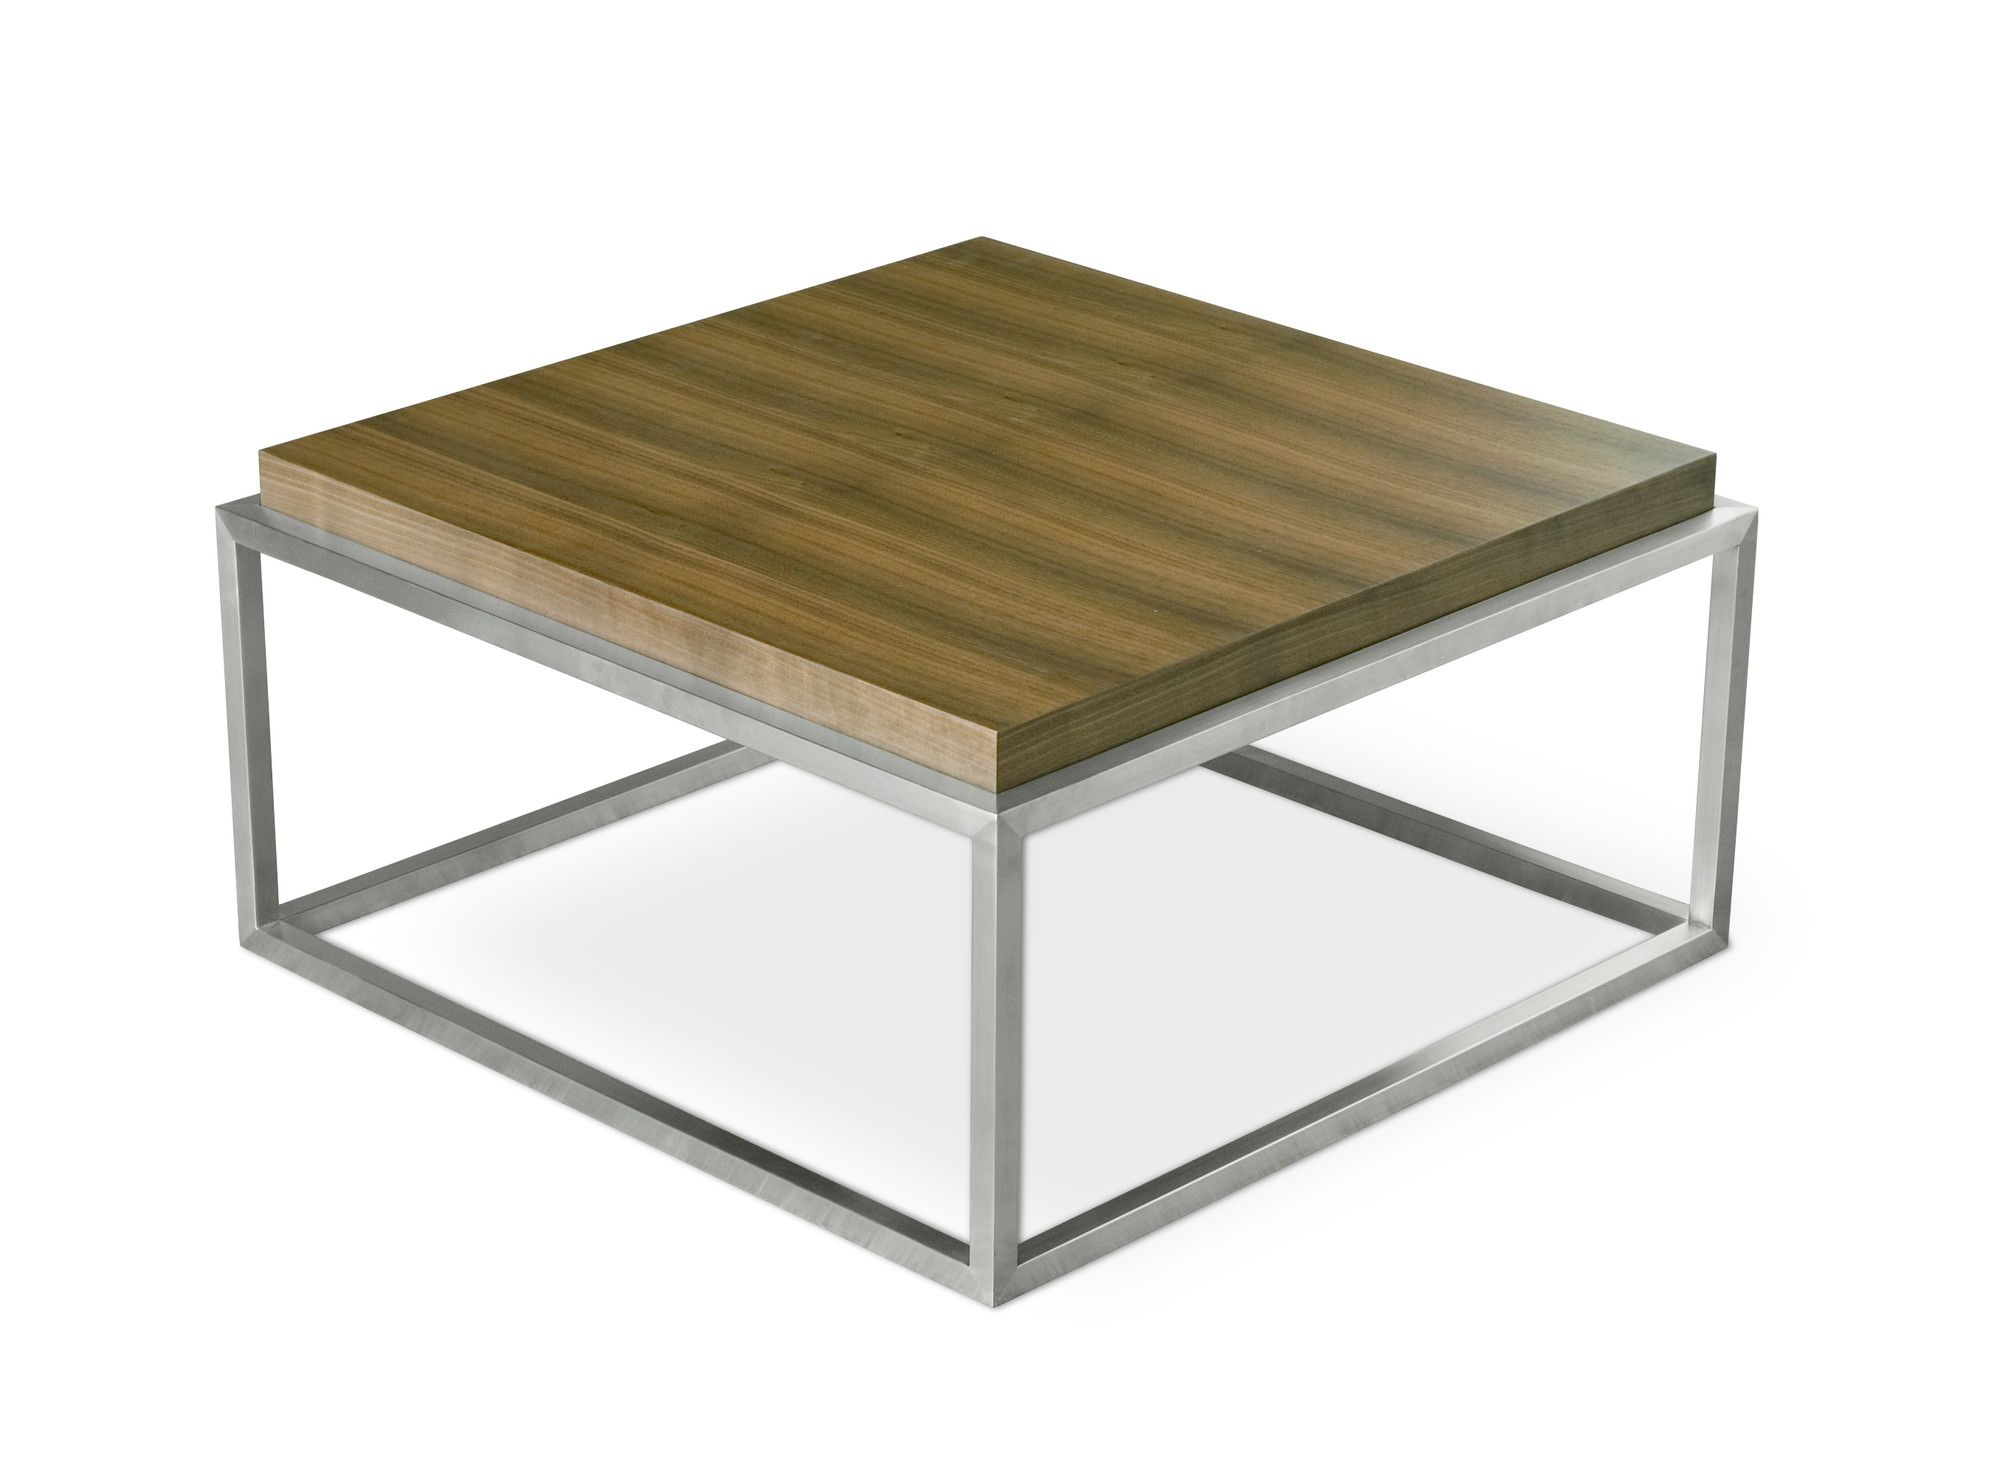 Gus Modern Accent Tables Drake Coffee Table Coffee Table Coffee Table Square Gus Modern Furniture [ 1476 x 2000 Pixel ]